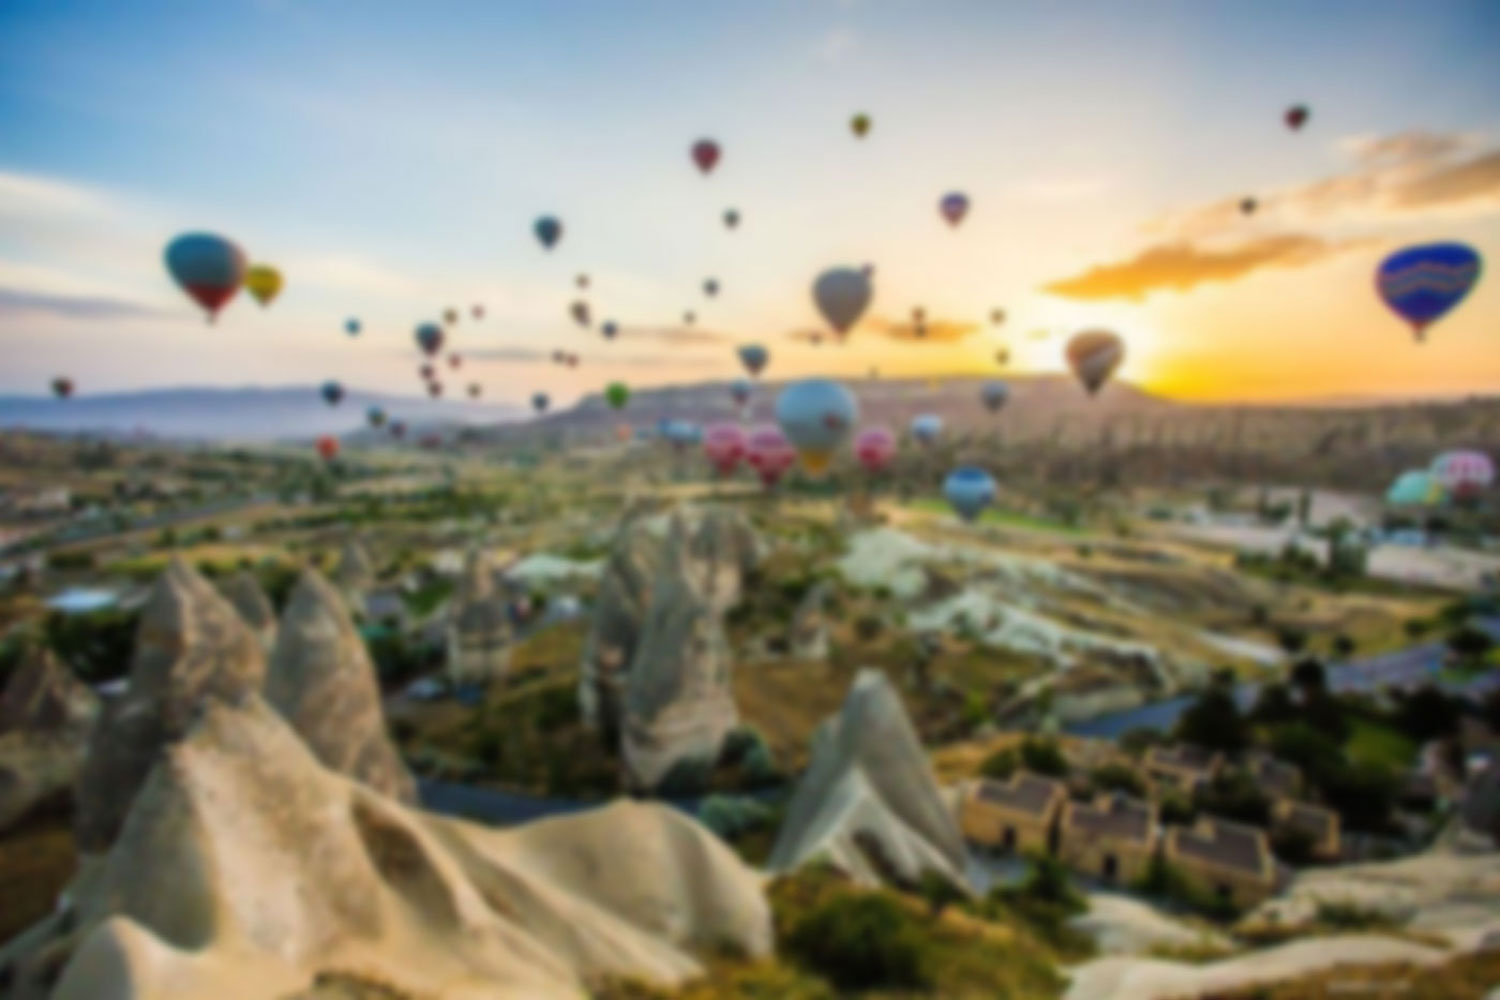 image of hot air balloons for background of sky soleil vo site